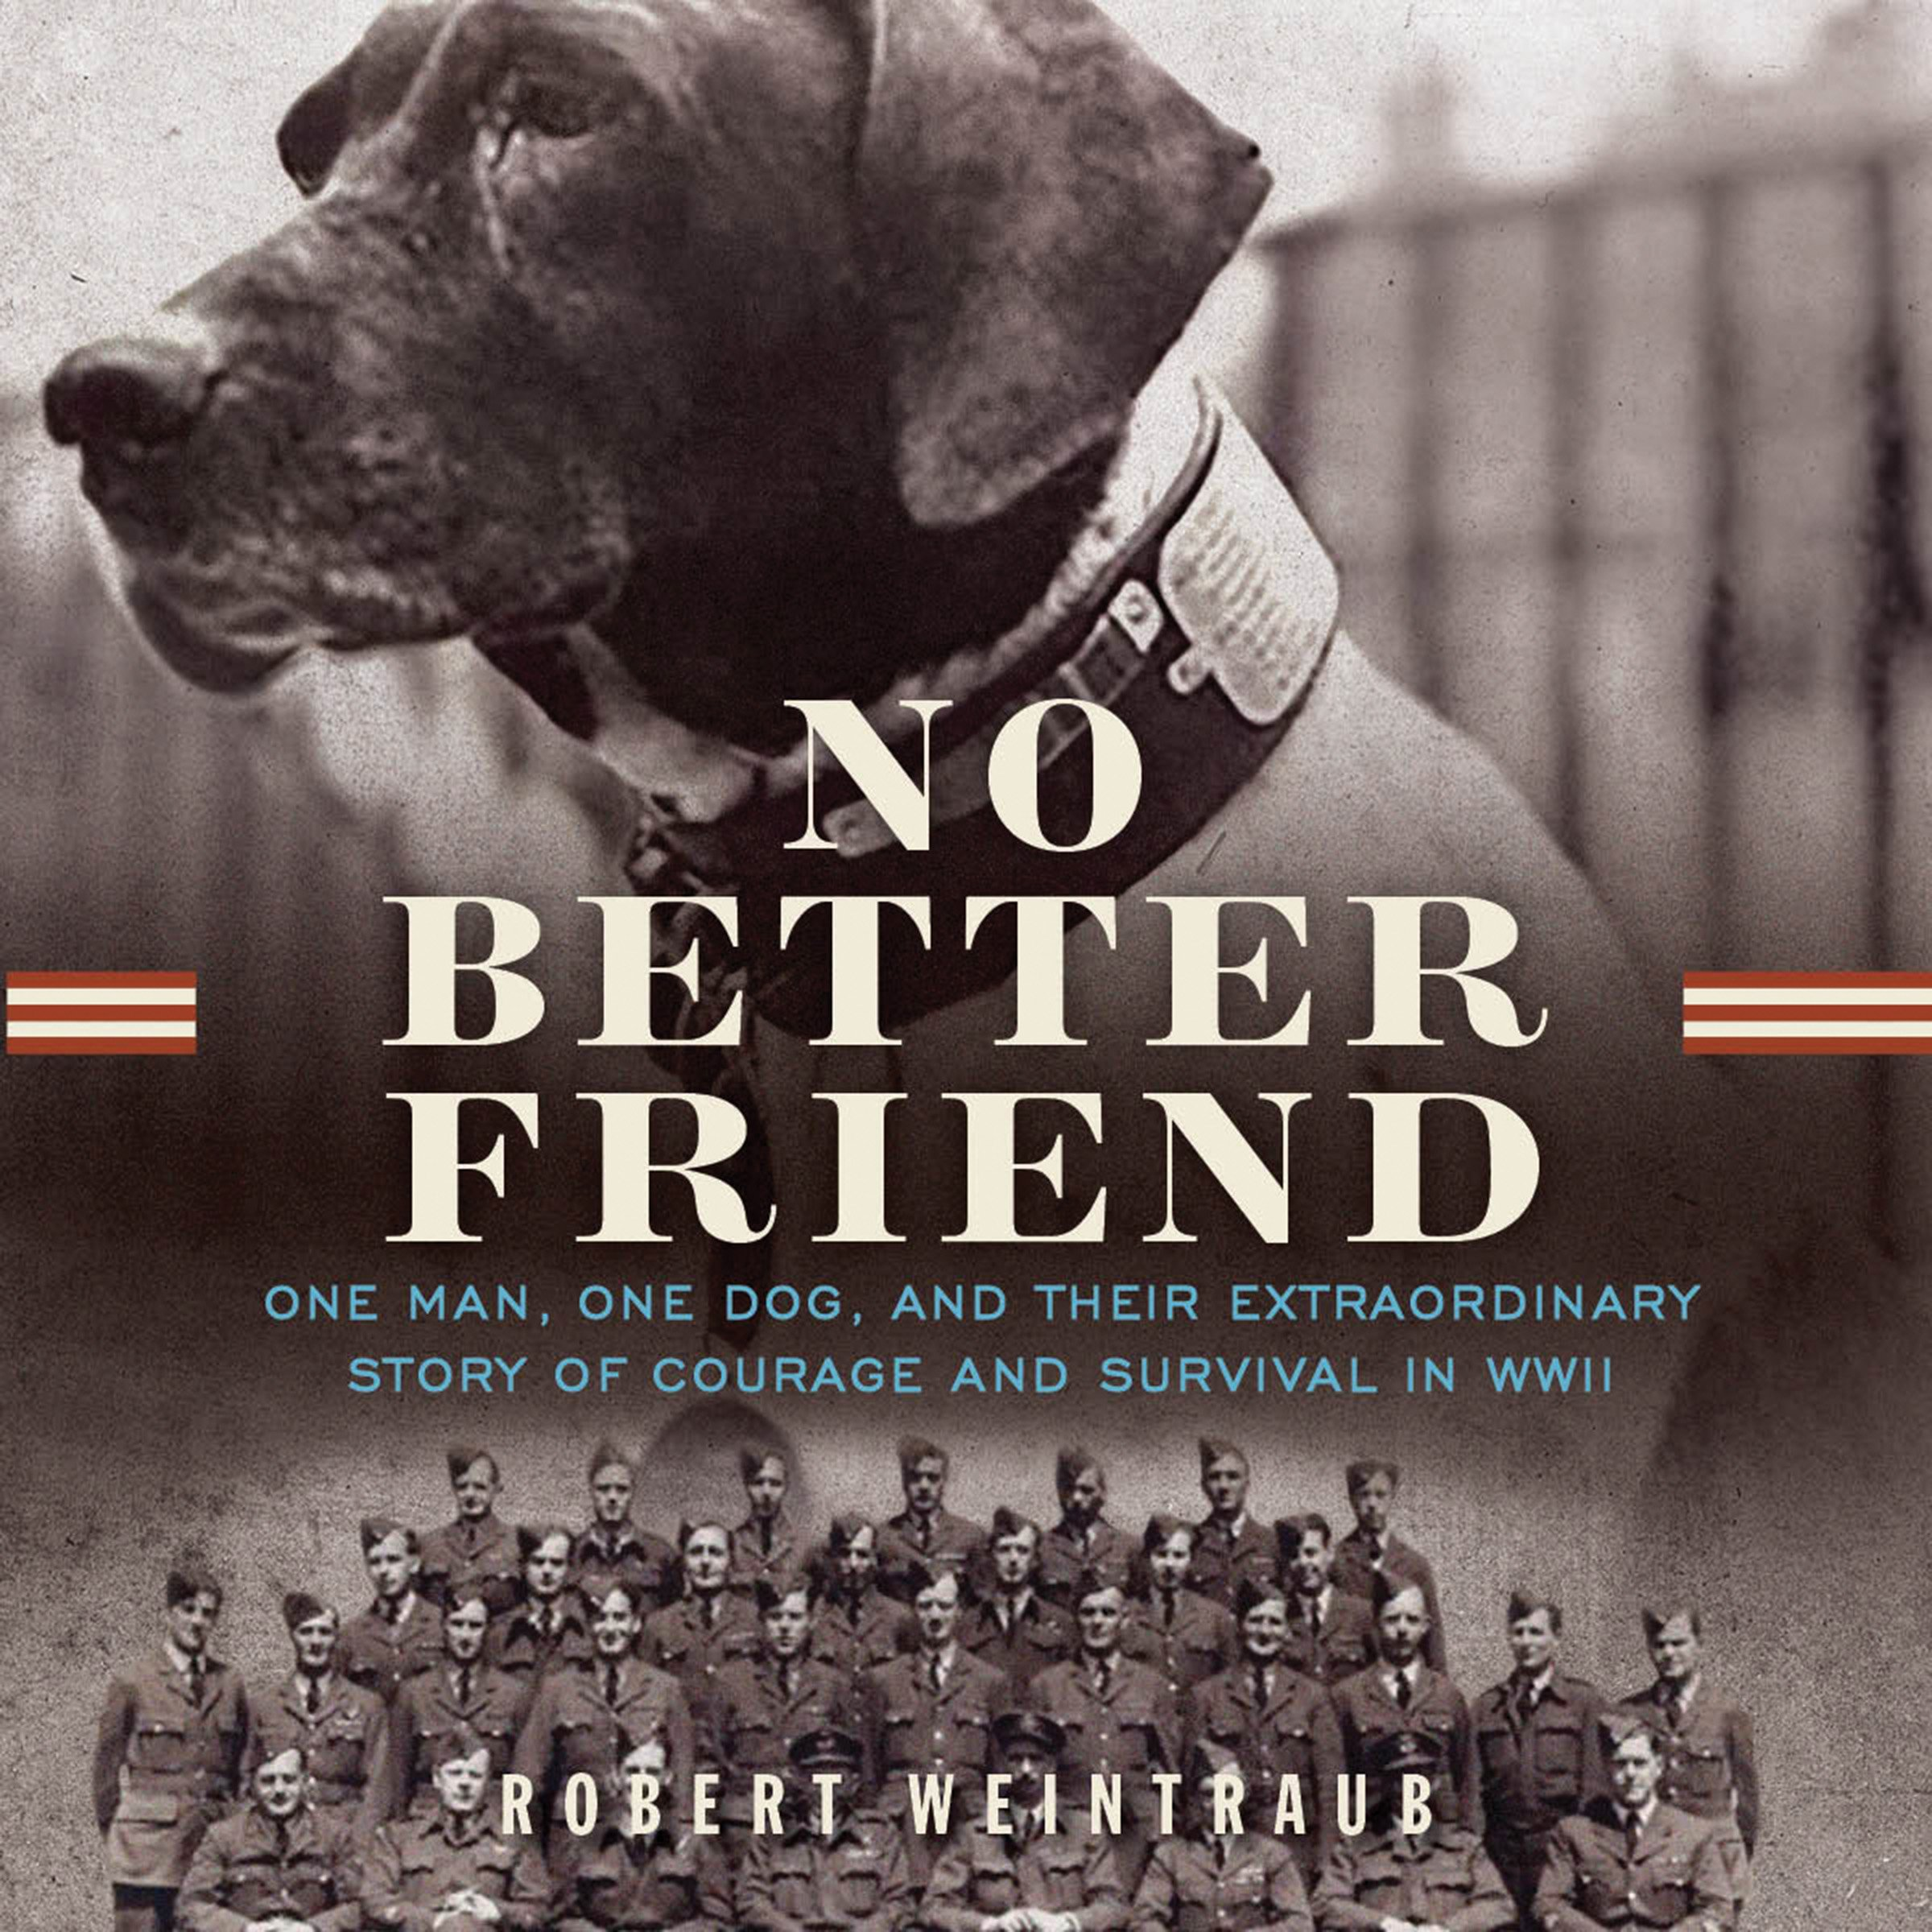 No Better Friend: One Man, One Dog, and Their Incredible Story of Courage and Survival in WWII by Hachette Audio (Image #1)